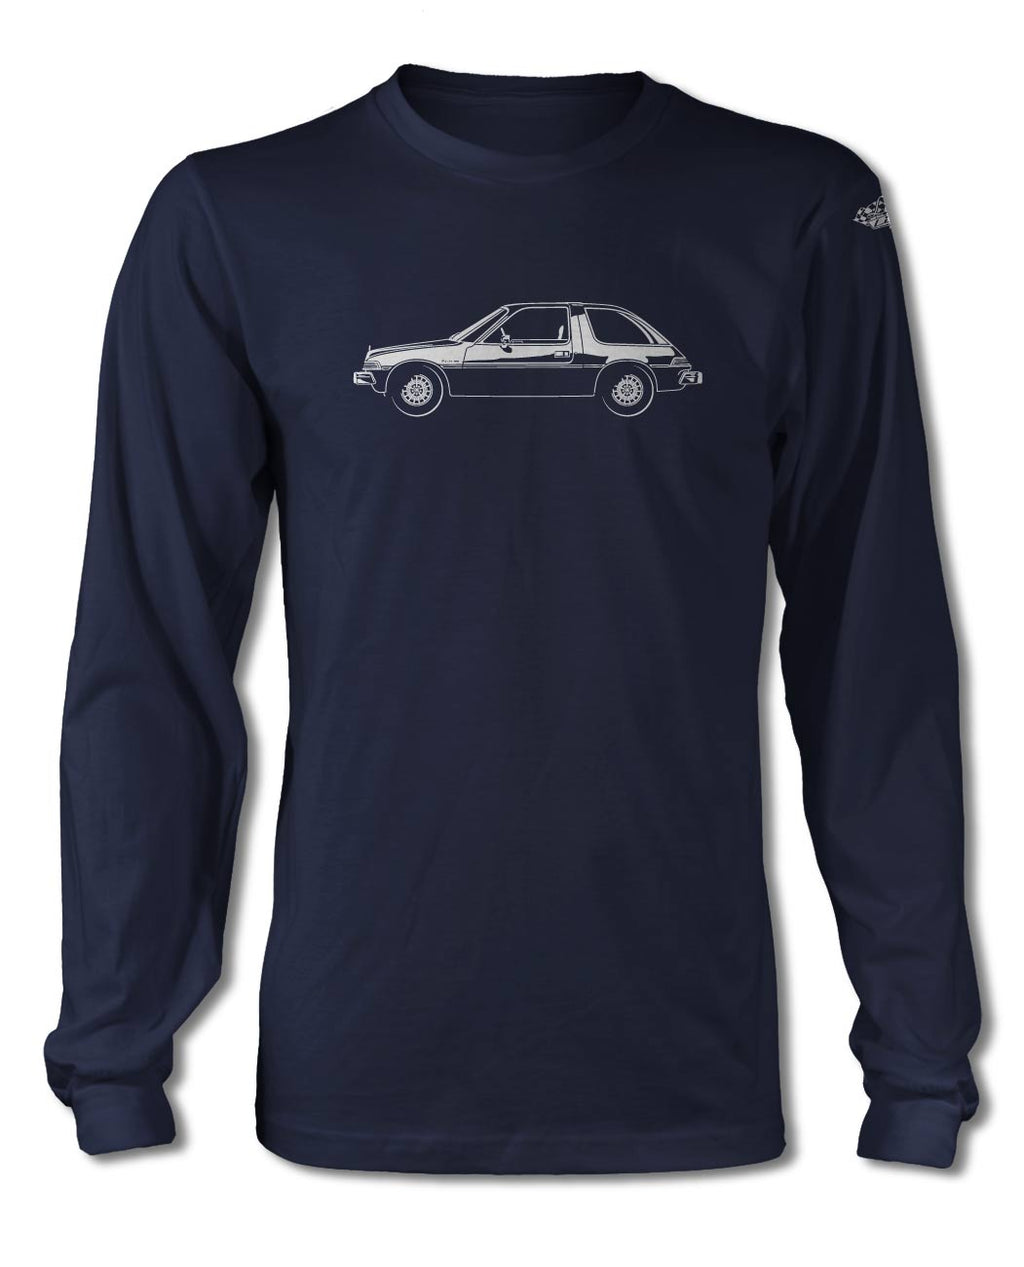 1979 AMC Pacer X T-Shirt - Long Sleeves - Side View